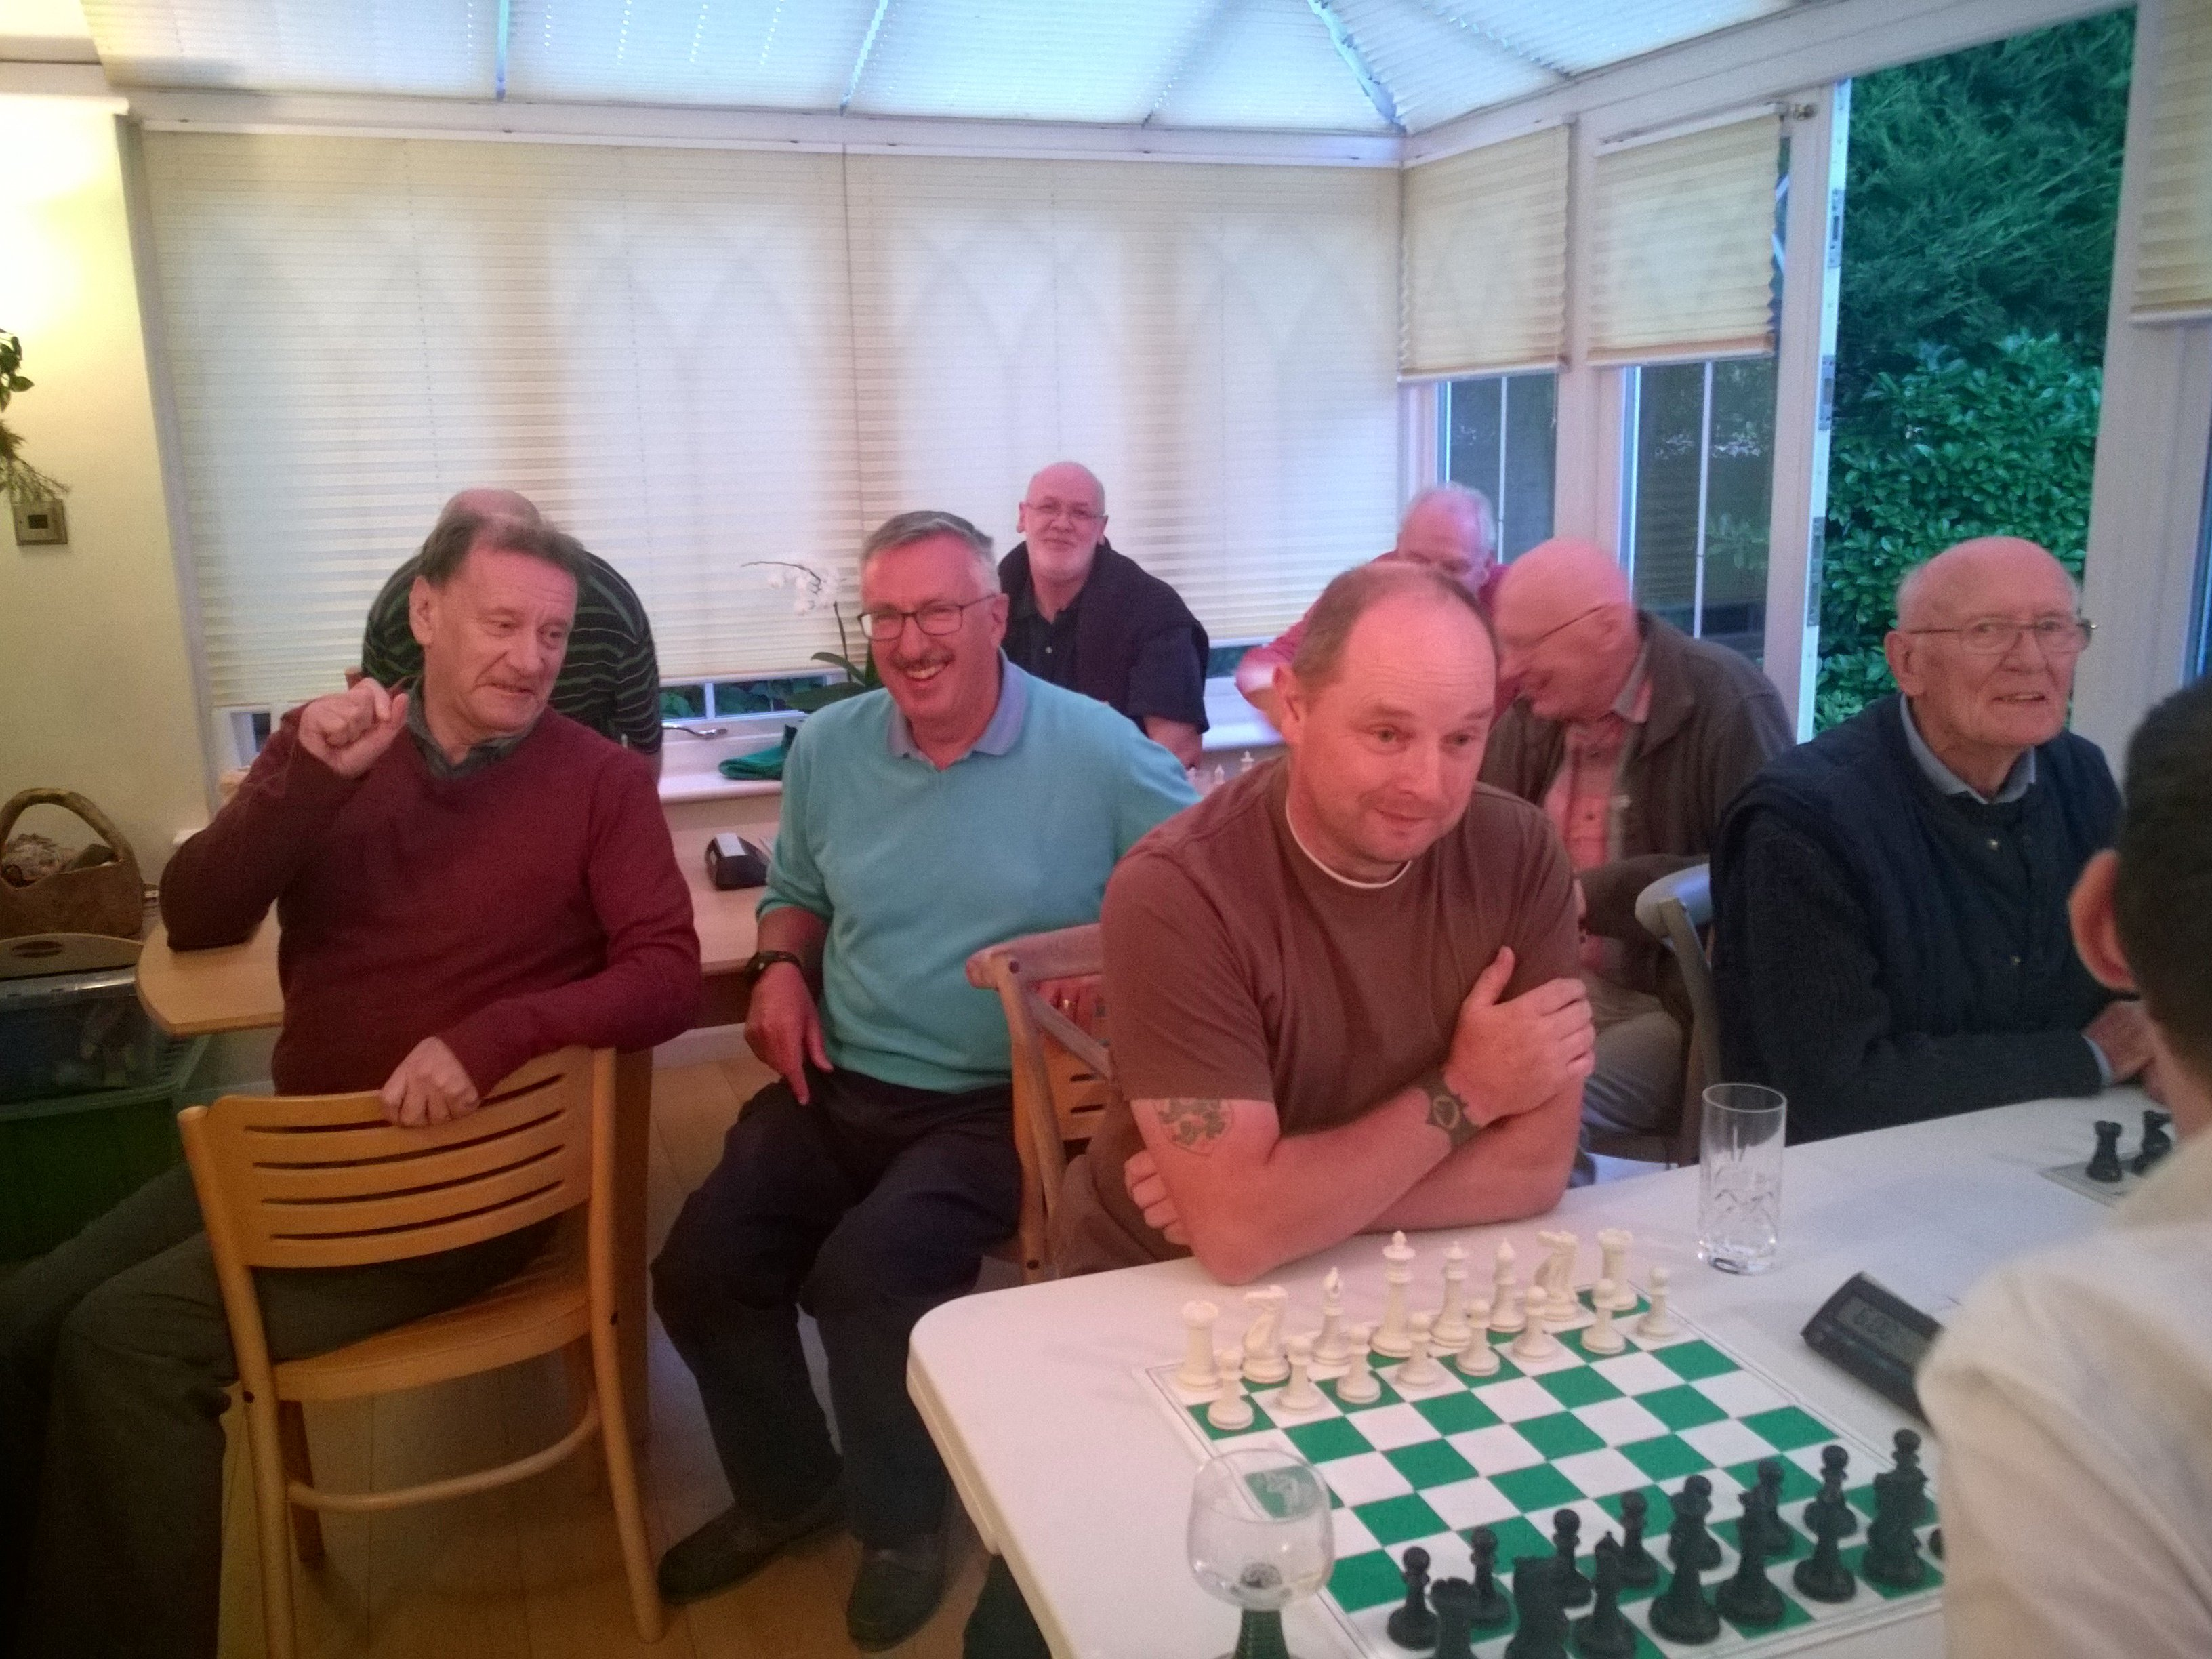 Chess club pictures 01